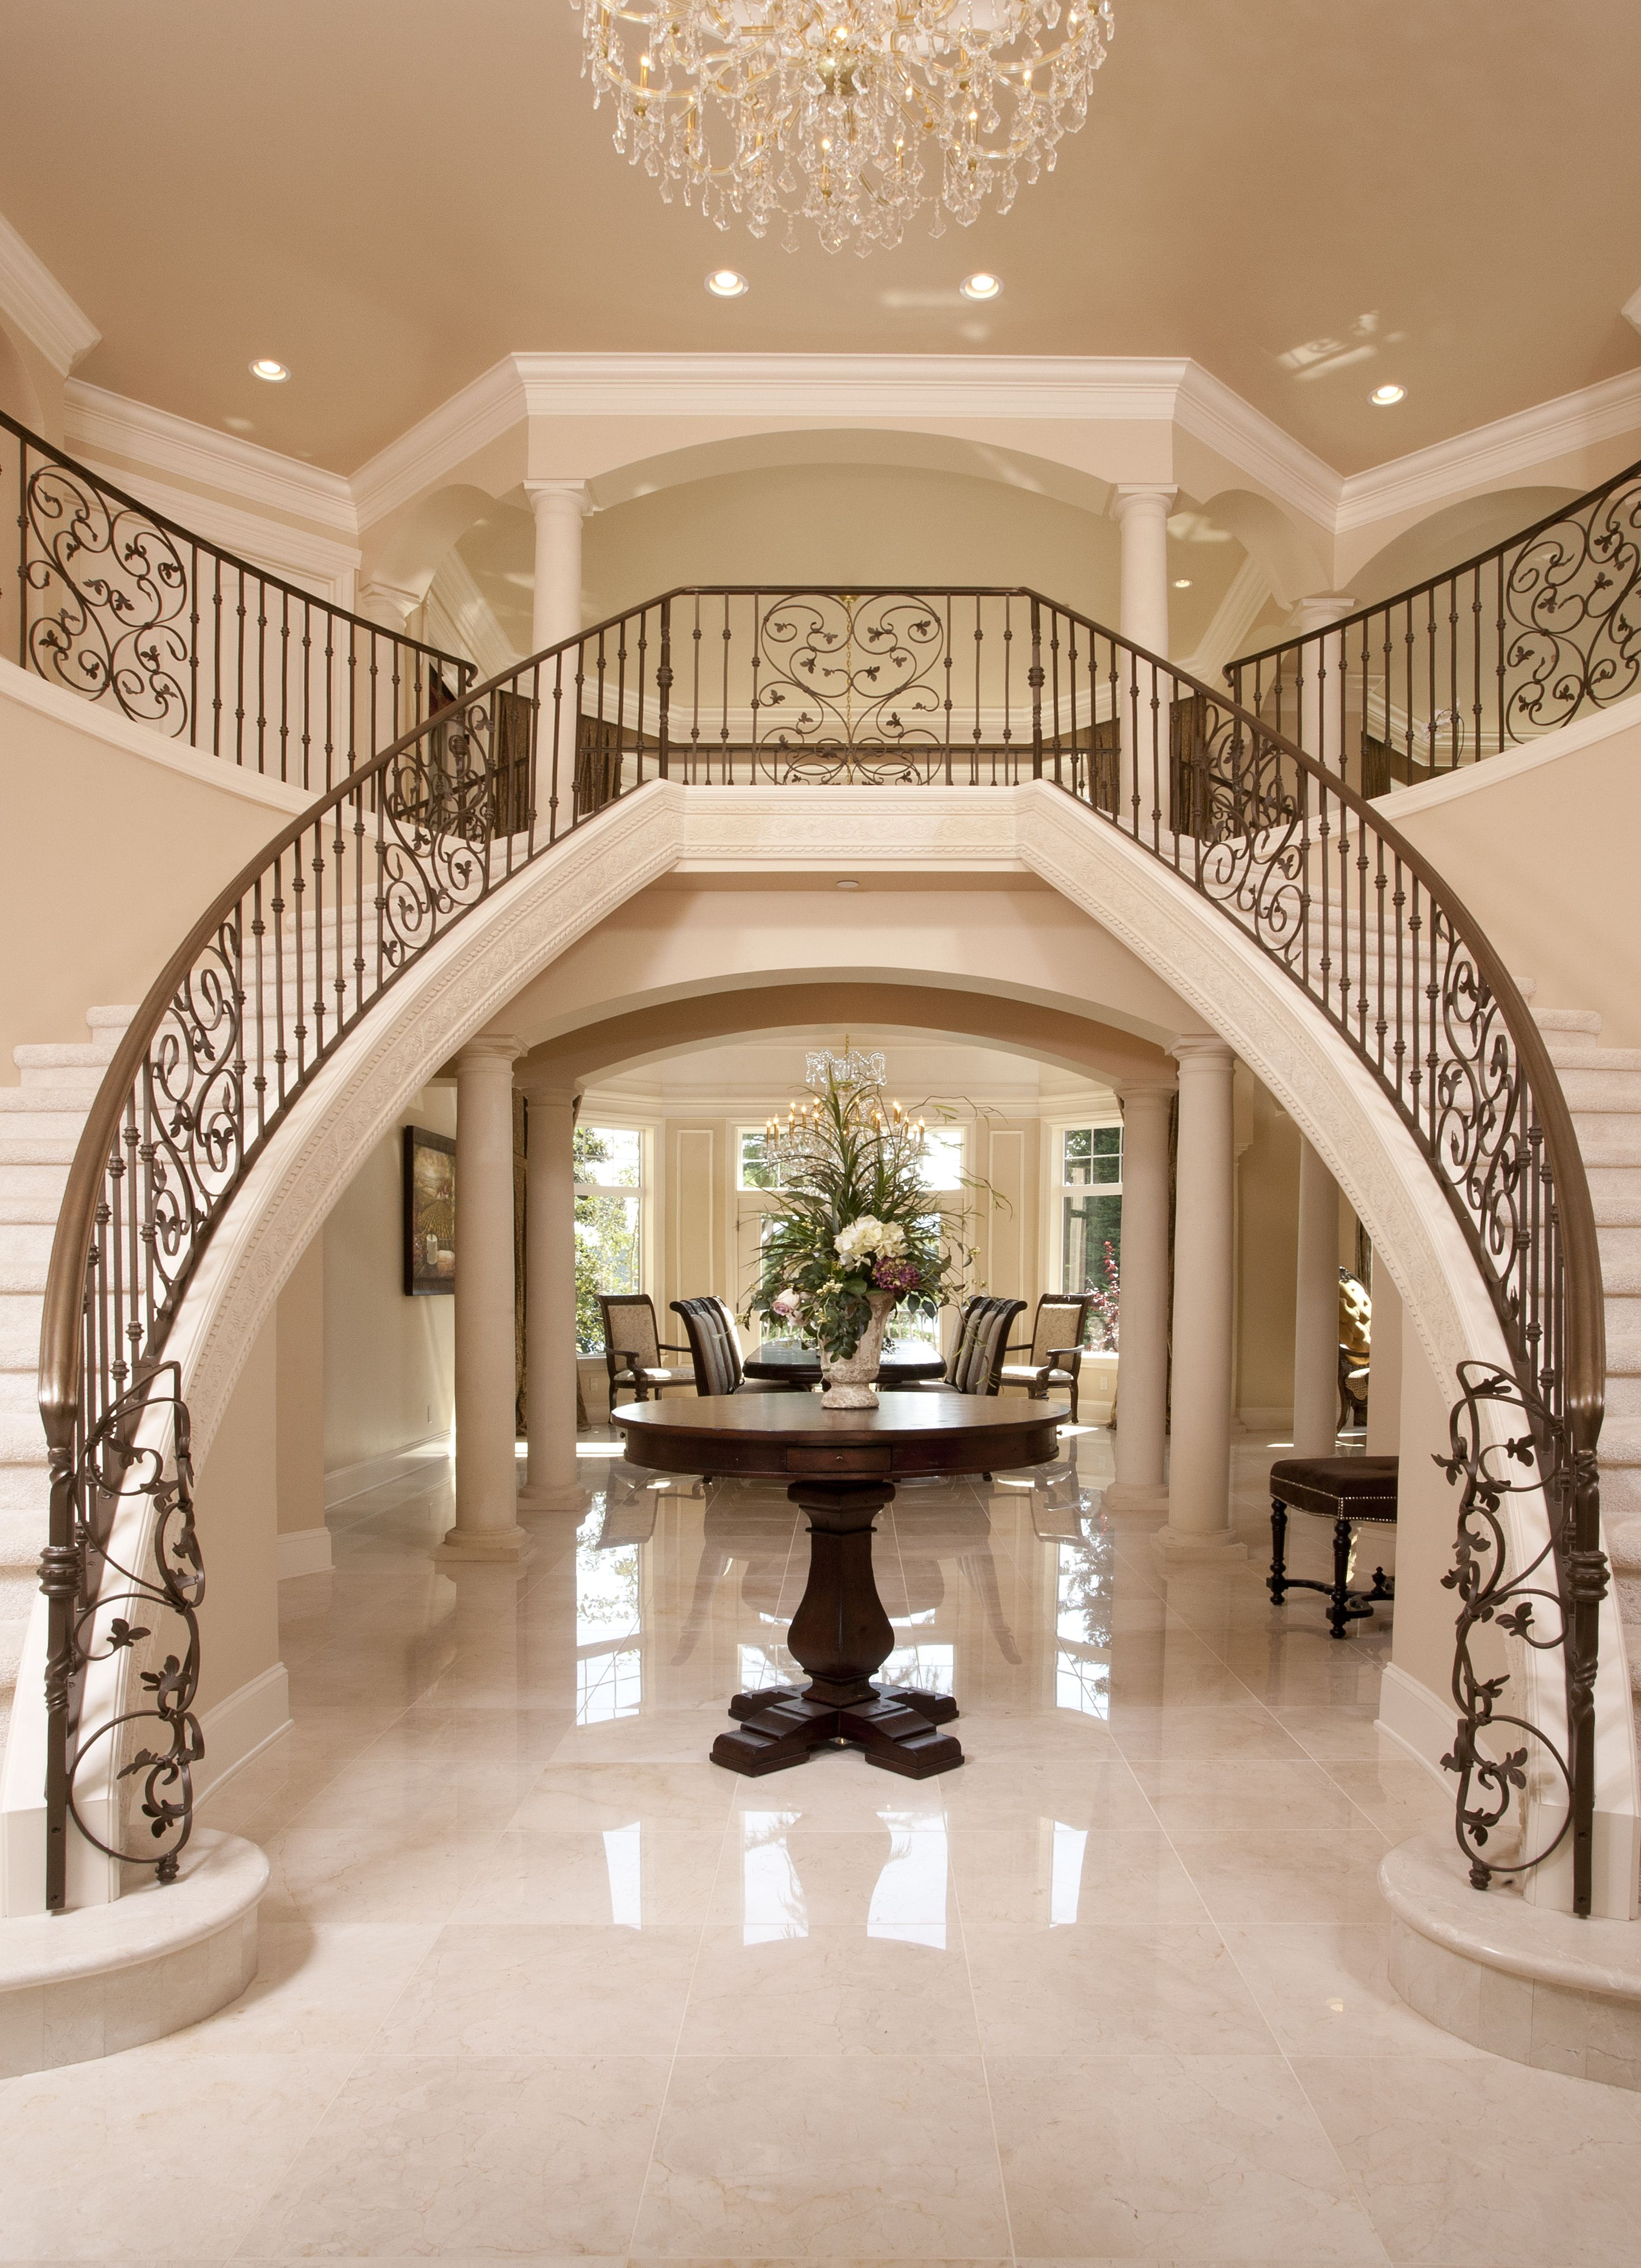 Luxury Iron Banister Dual Staircase Grand Entryway House Entrance